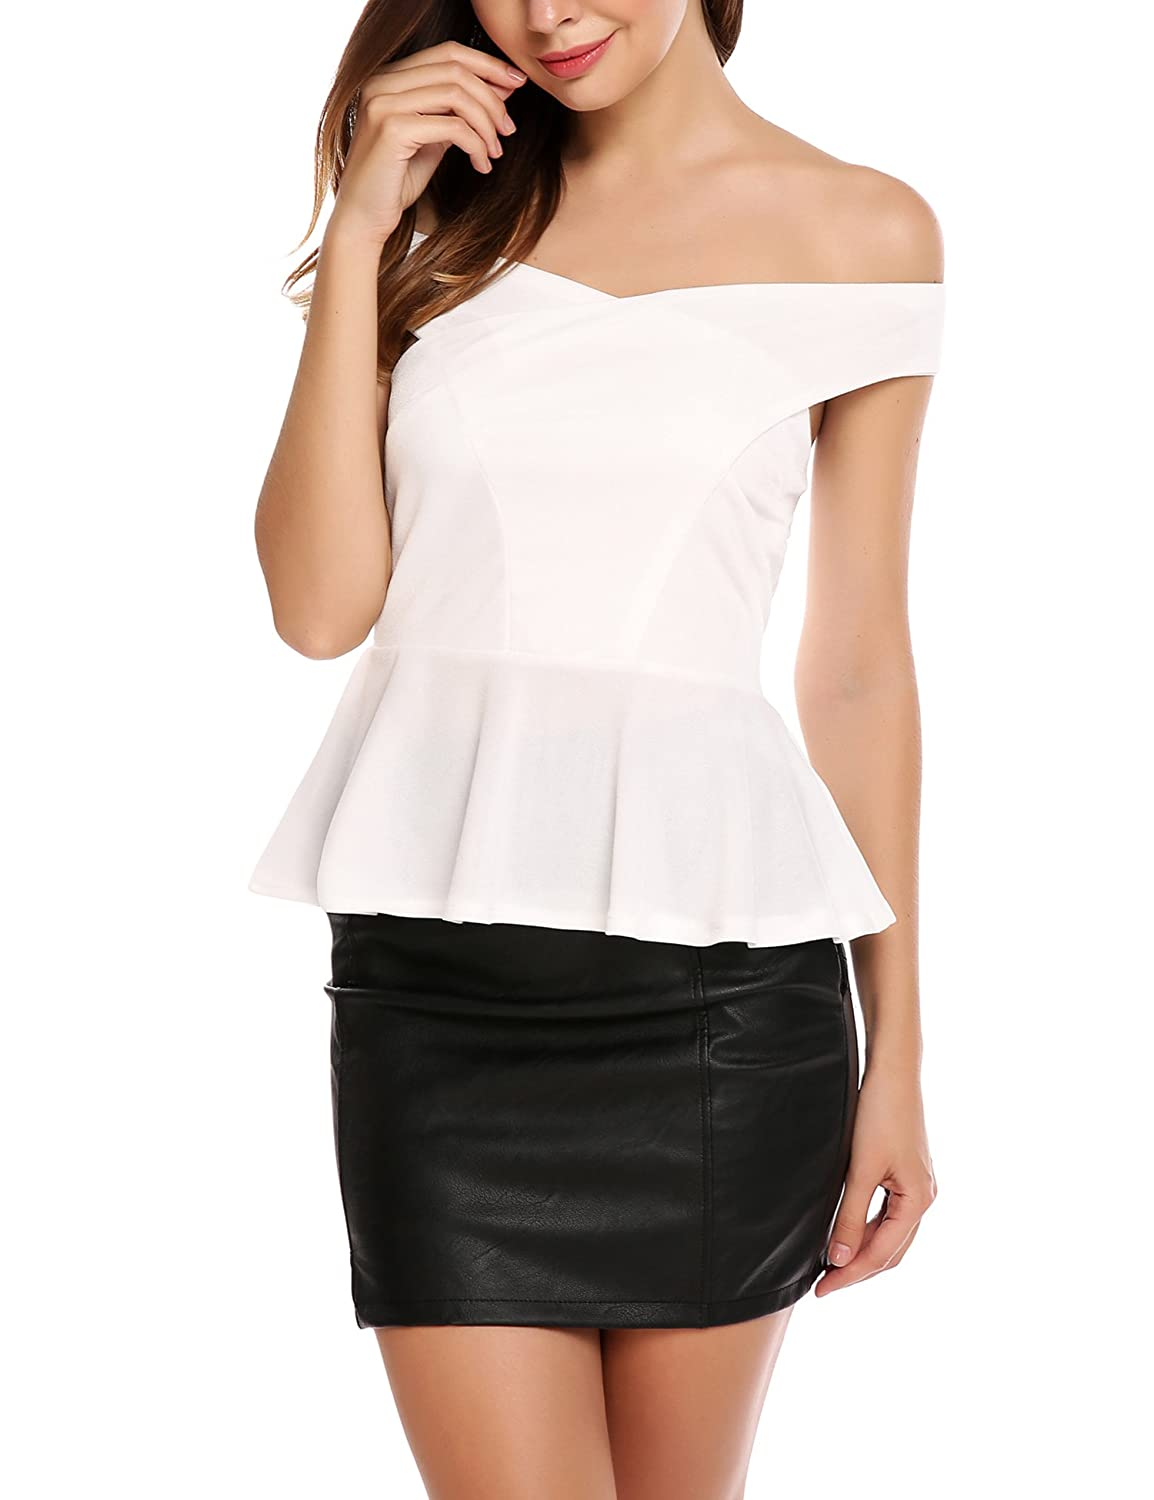 cecf5b2f2b232a Zeagoo Women Peplum Tops Sleeveless Ruffle Hem Sexy Off Shoulder Shirt  Cross Wrap Front Blouse at Amazon Women s Clothing store